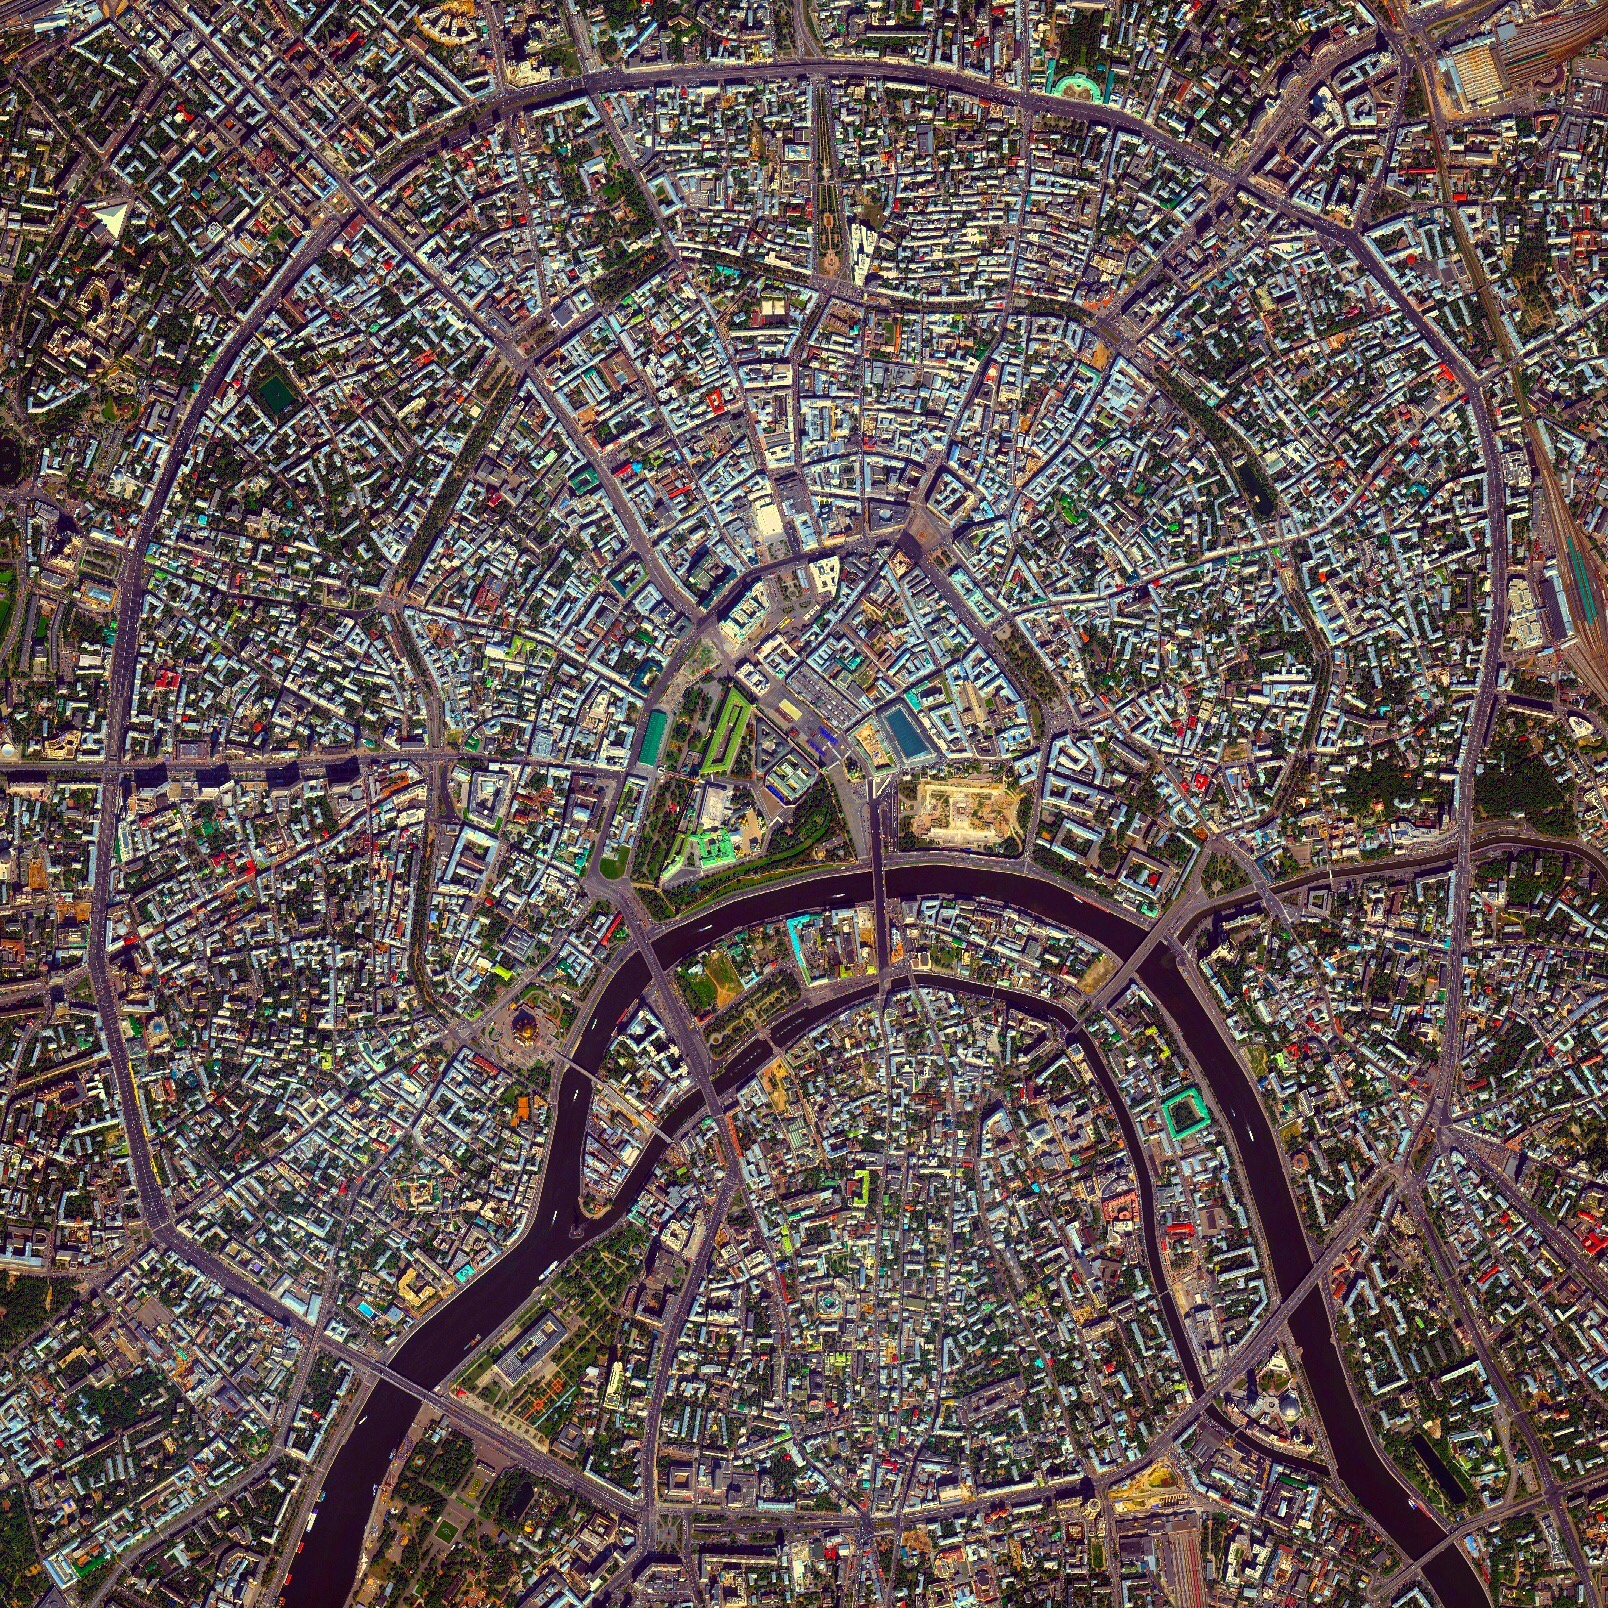 6/6/2016    Moscow Rings     Moscow, Russia    55°45′N 37°37′E     Moscow is the capital and largest city in Russia with 12.2 million residents. The city is organized into five concentric transportation rings that surround the Kremlin. The two innermost rings are seen here.